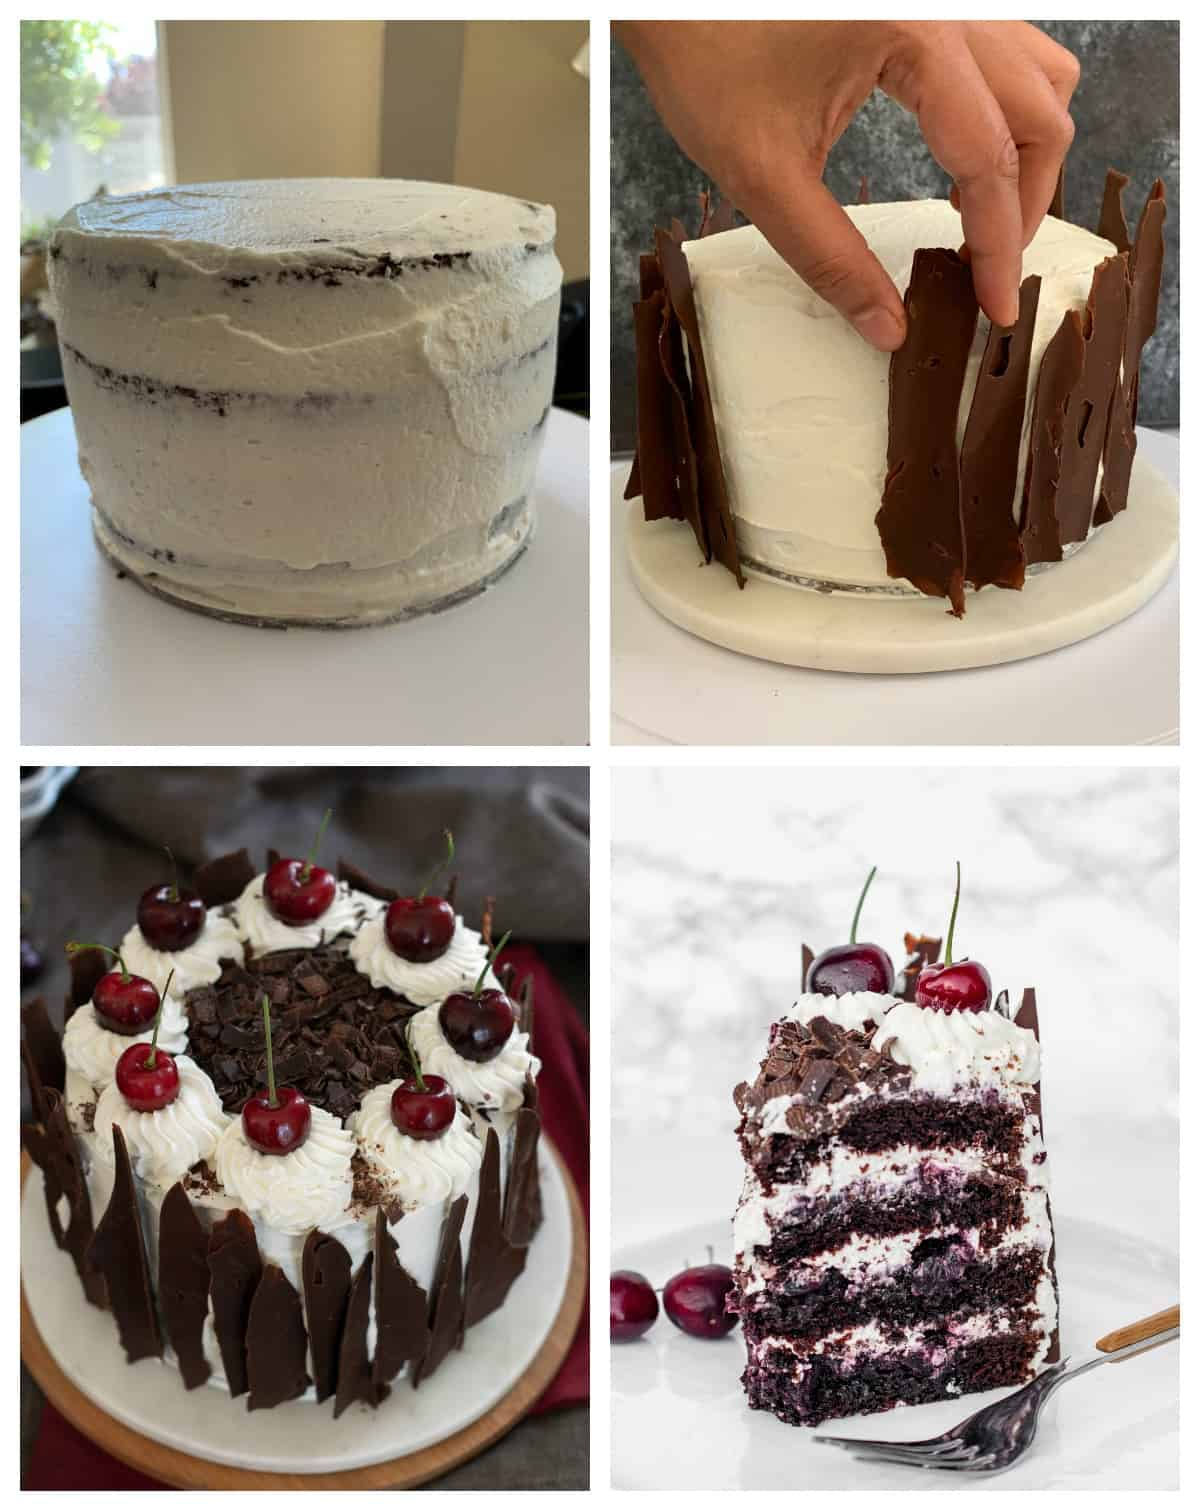 Putting decorations on the black forest cake